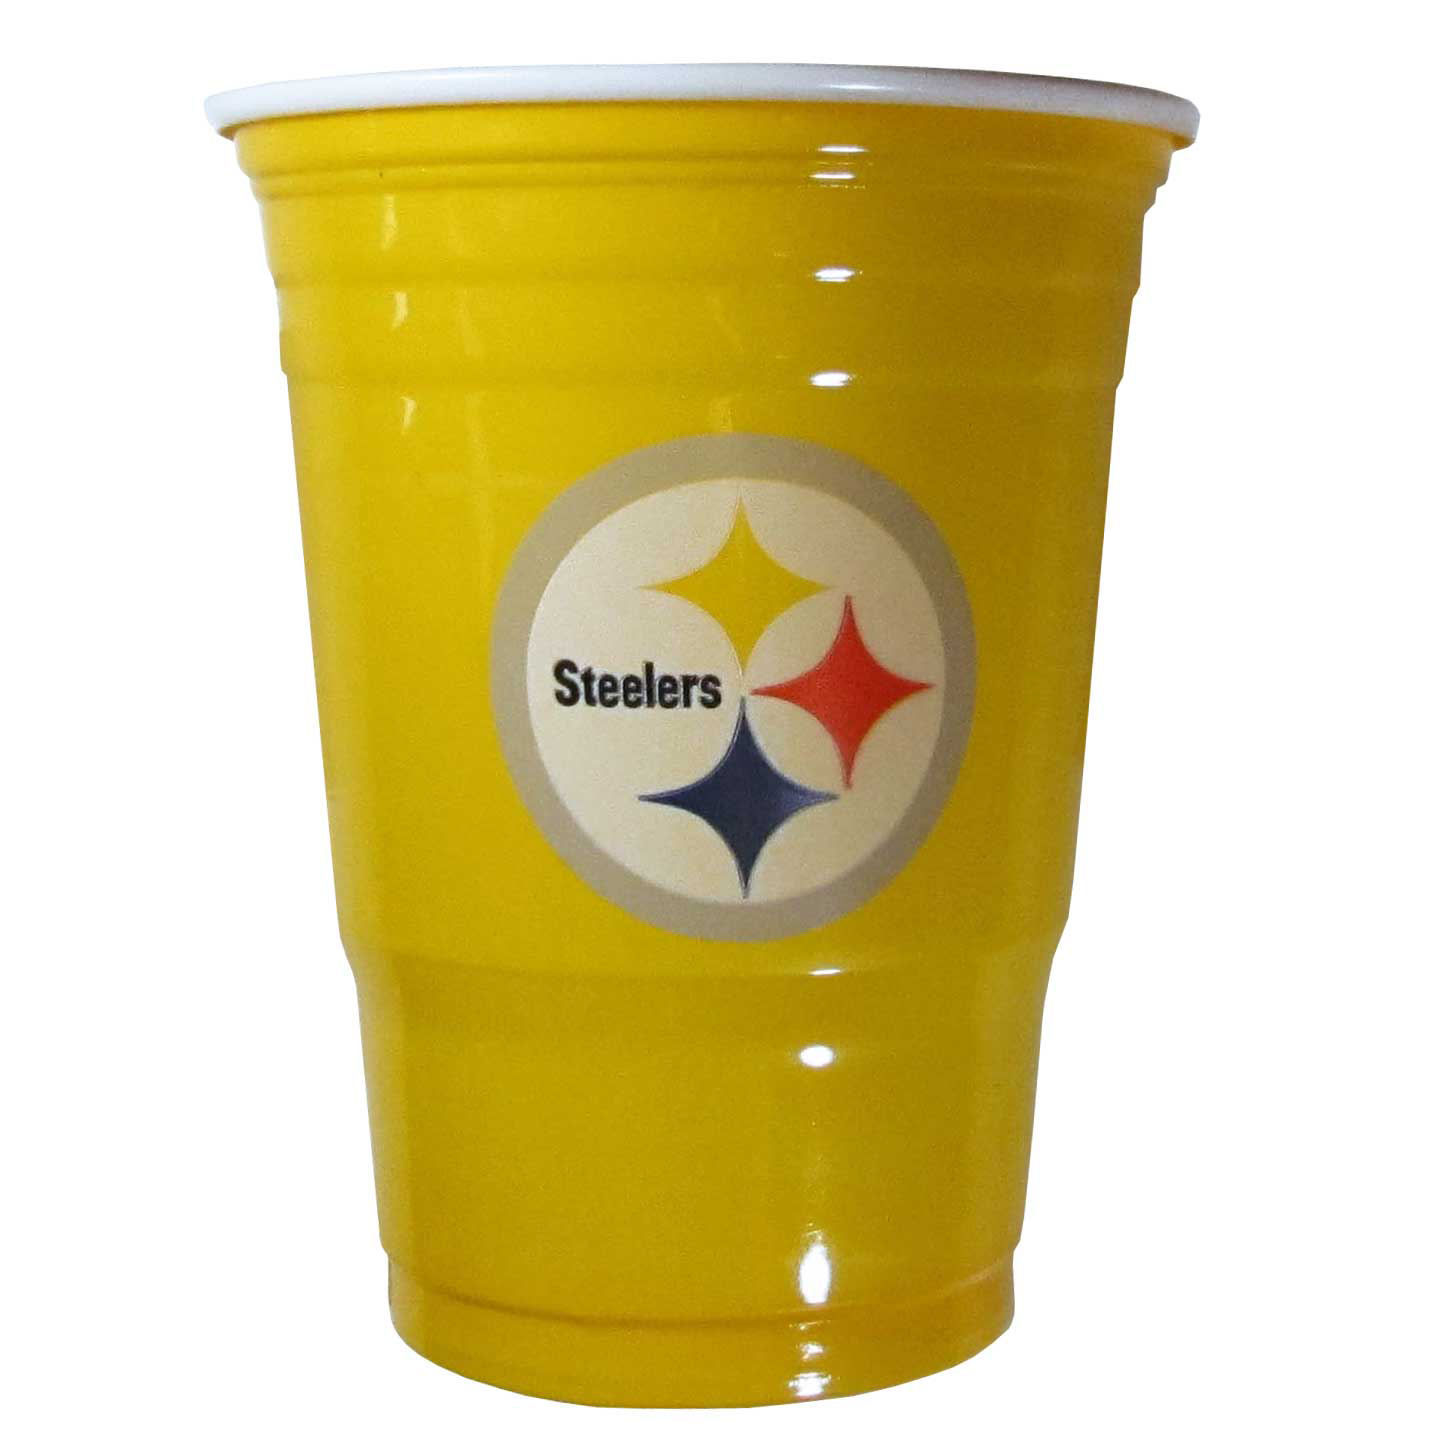 Pittsburgh Steelers Plastic Game Day Cups 2 sleeves of 18 (36 Cups) - Our 18 ounce game day cups are what every tailgating or backyard events needs! The cups feature a big Pittsburgh Steelers logo so you can show off your team pride. The popular 18 ounce size is perfect for drinks or ping pong balls! 2 sleeves of 18 cups, 36 cups in total.